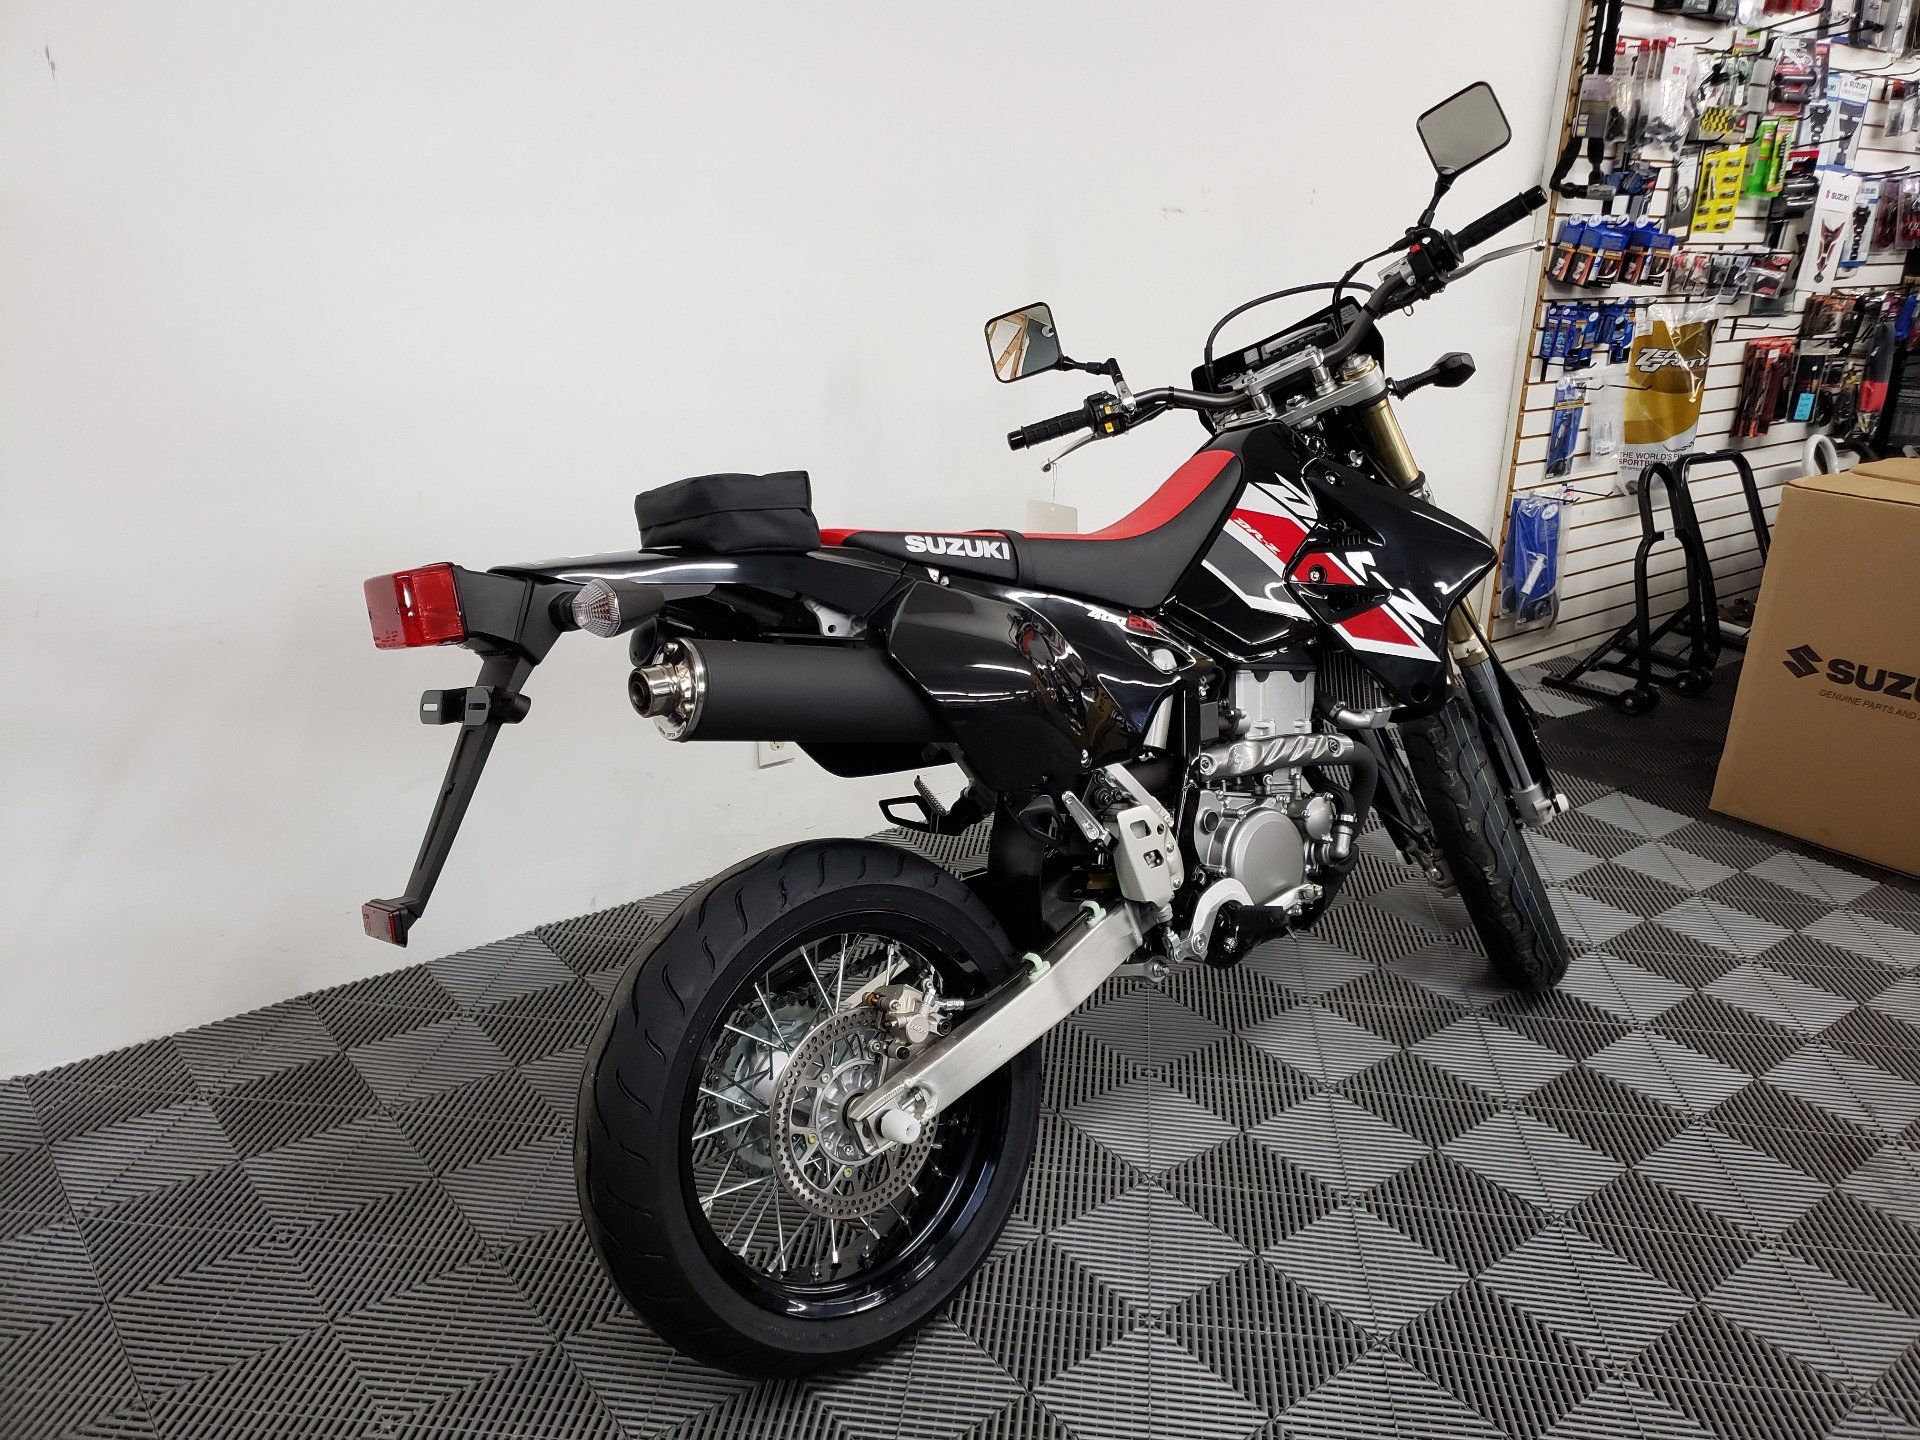 2021 Suzuki DR-Z400SM in Van Nuys, California - Photo 3